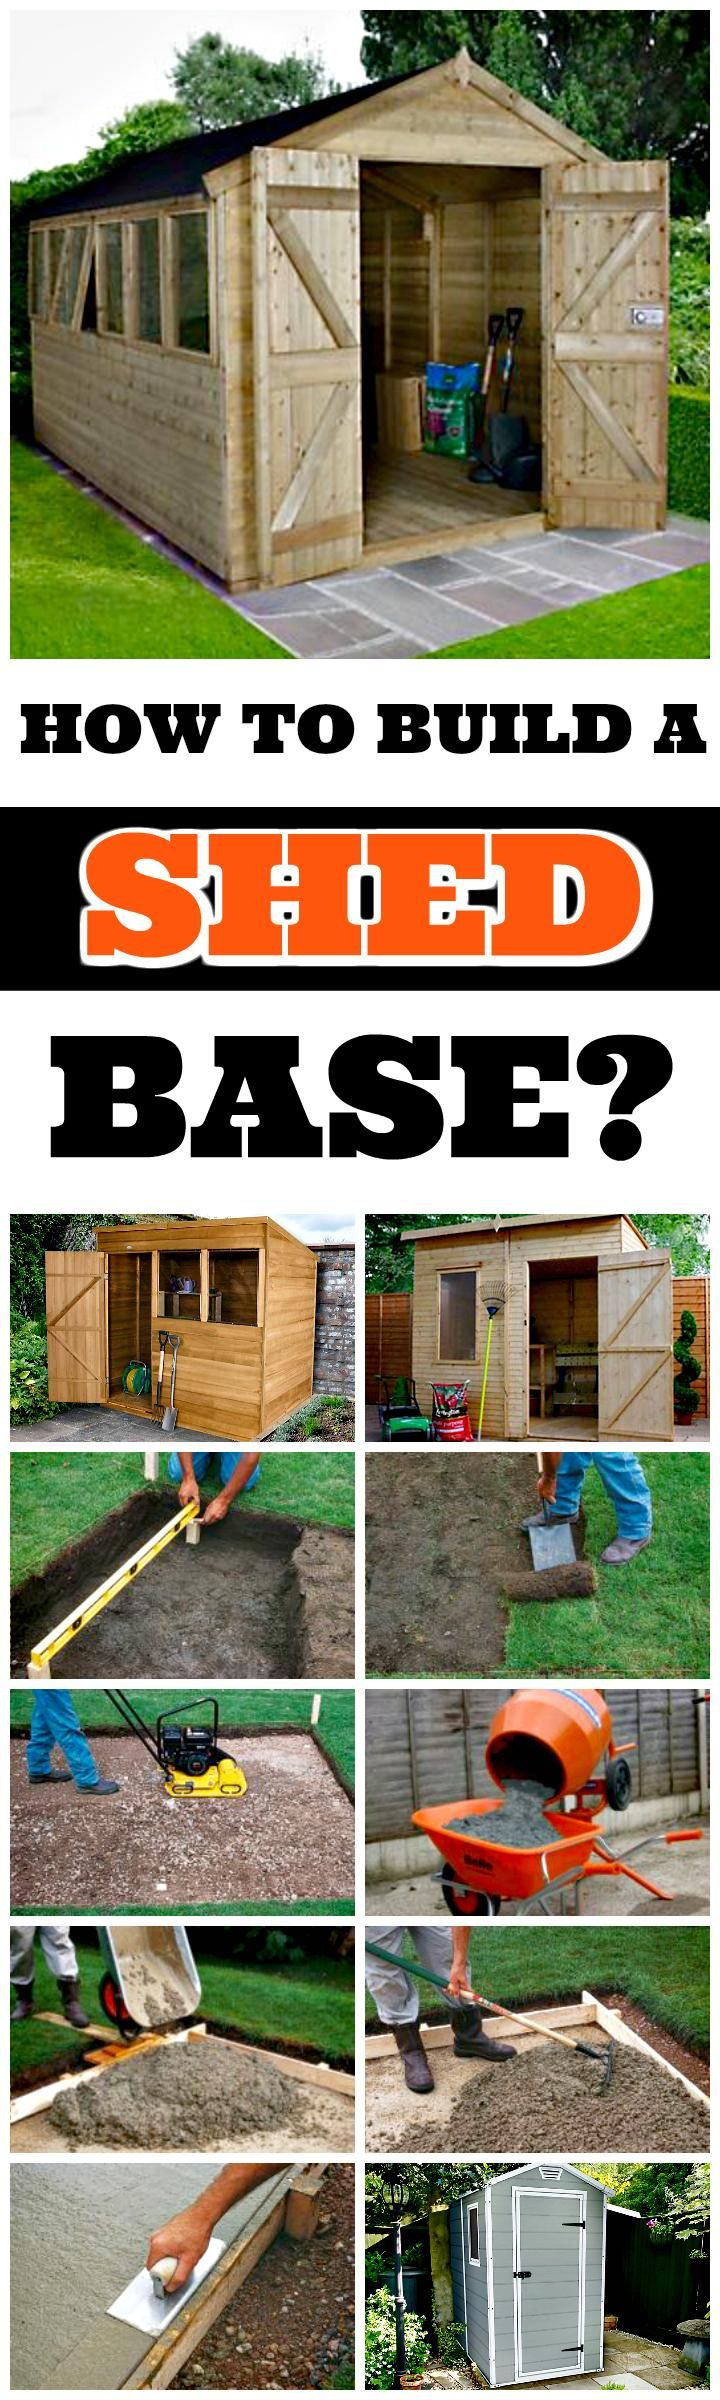 how to build shed concrete base